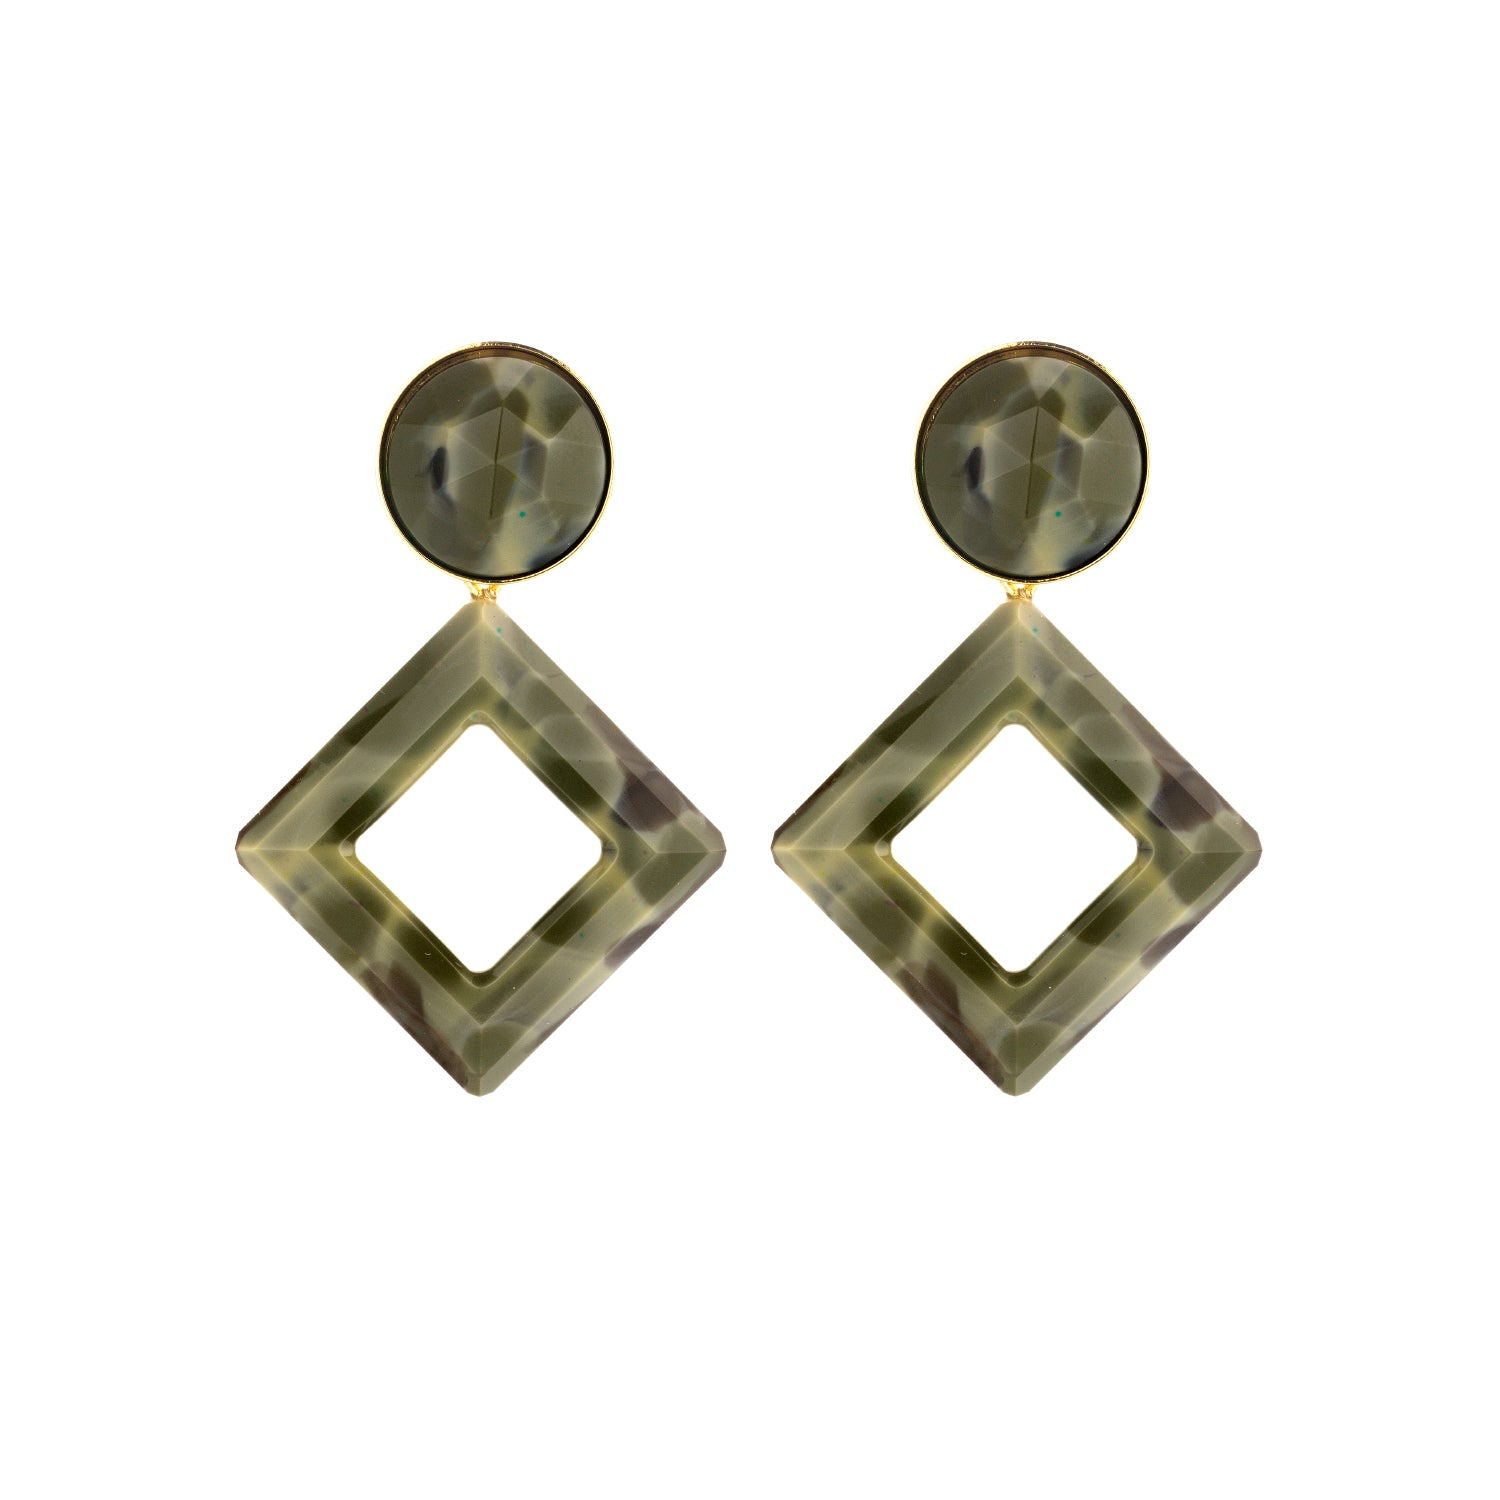 Jacky kaki earrings